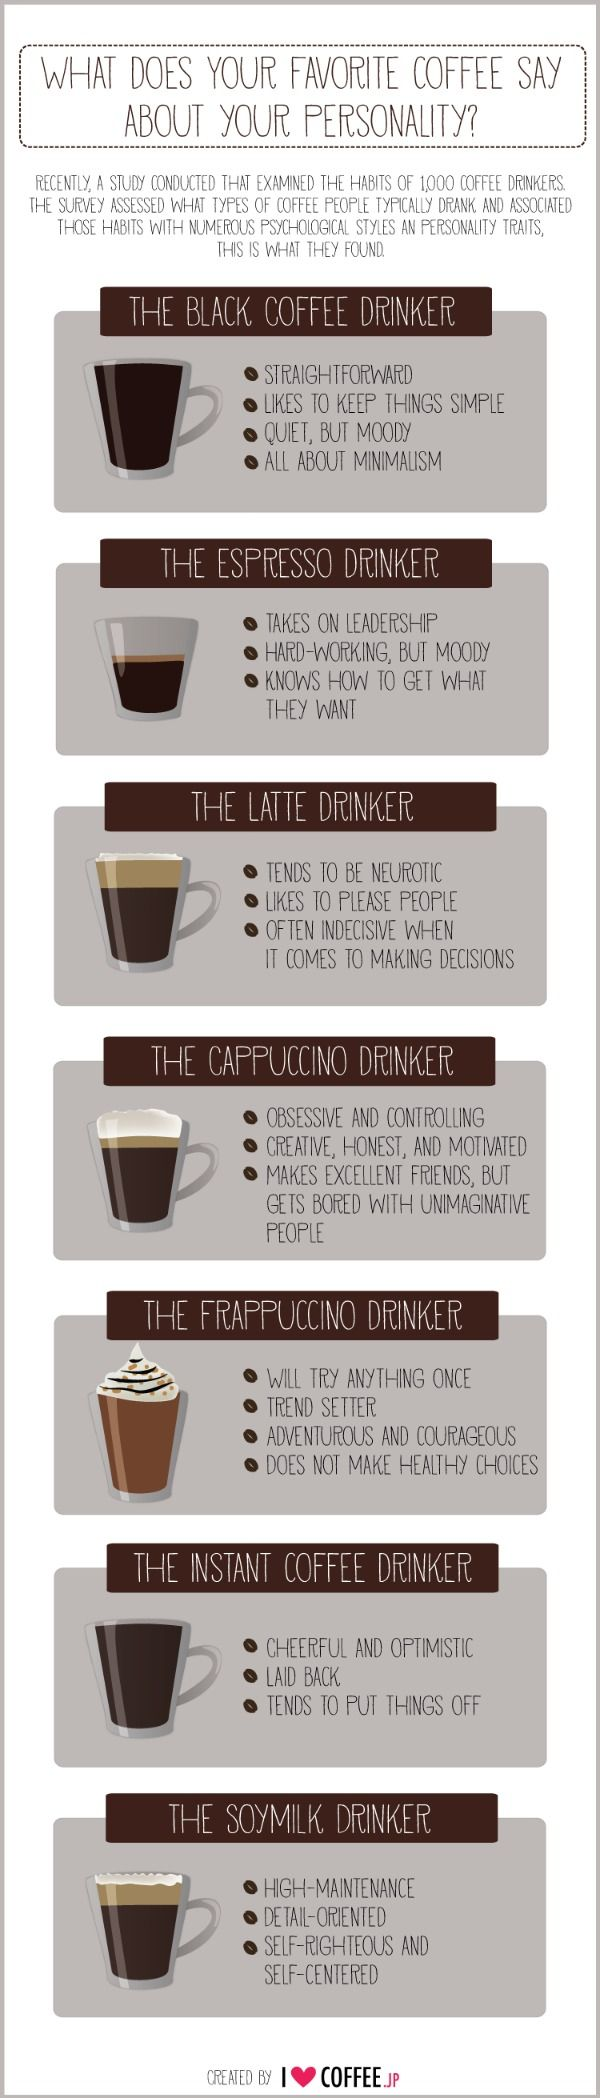 Apparently, This is What Your Favorite Coffee Drink Says About You |Foodbeast